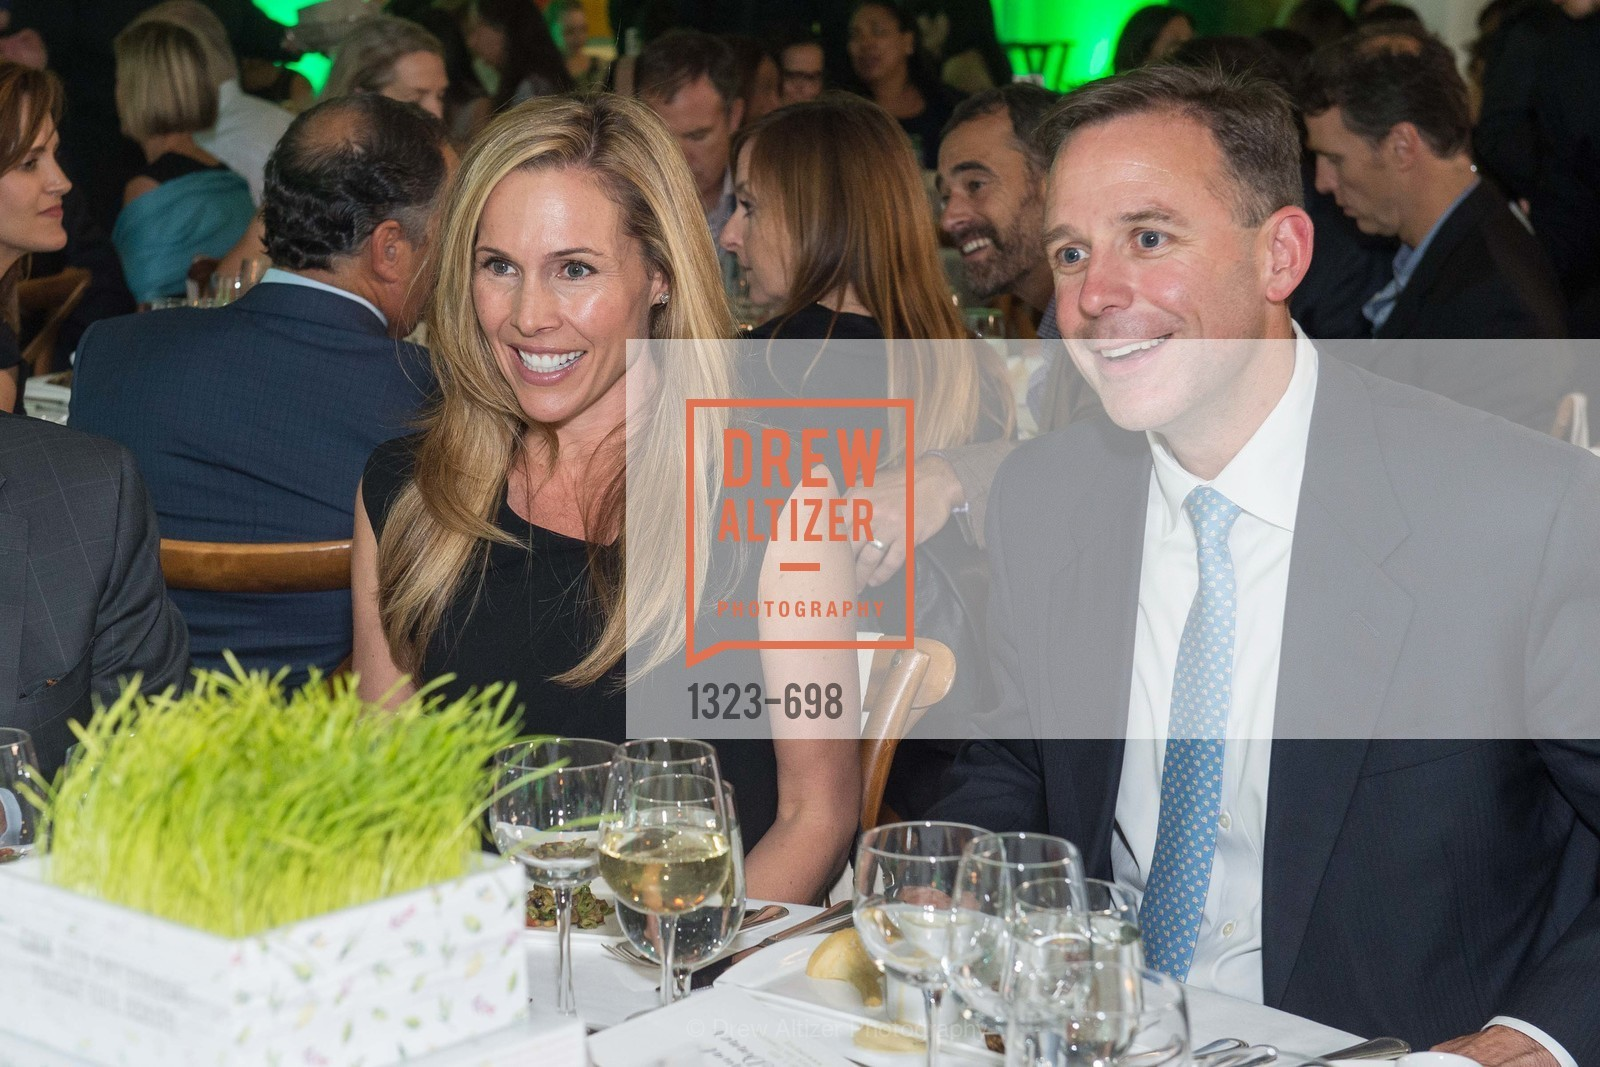 Alex Lyon, David Lyon, EWG's 6th Annual Earth Dinner, US, May 6th, 2015,Drew Altizer, Drew Altizer Photography, full-service agency, private events, San Francisco photographer, photographer california